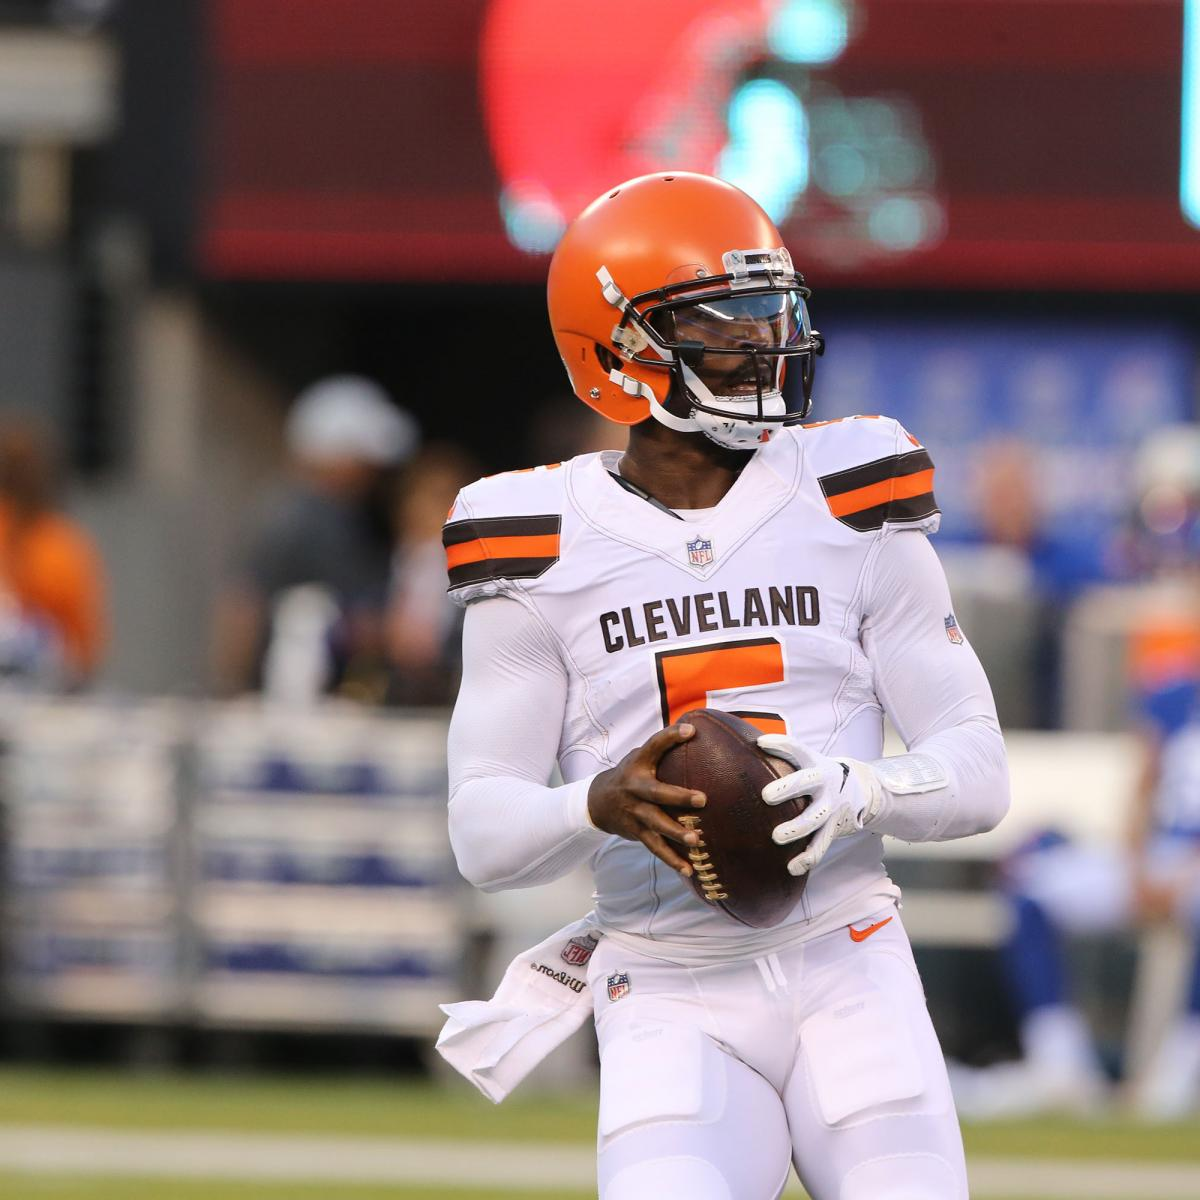 Fantasy Football 2018: Cheatsheet for Sleepers and Busts Heading into Your Draft